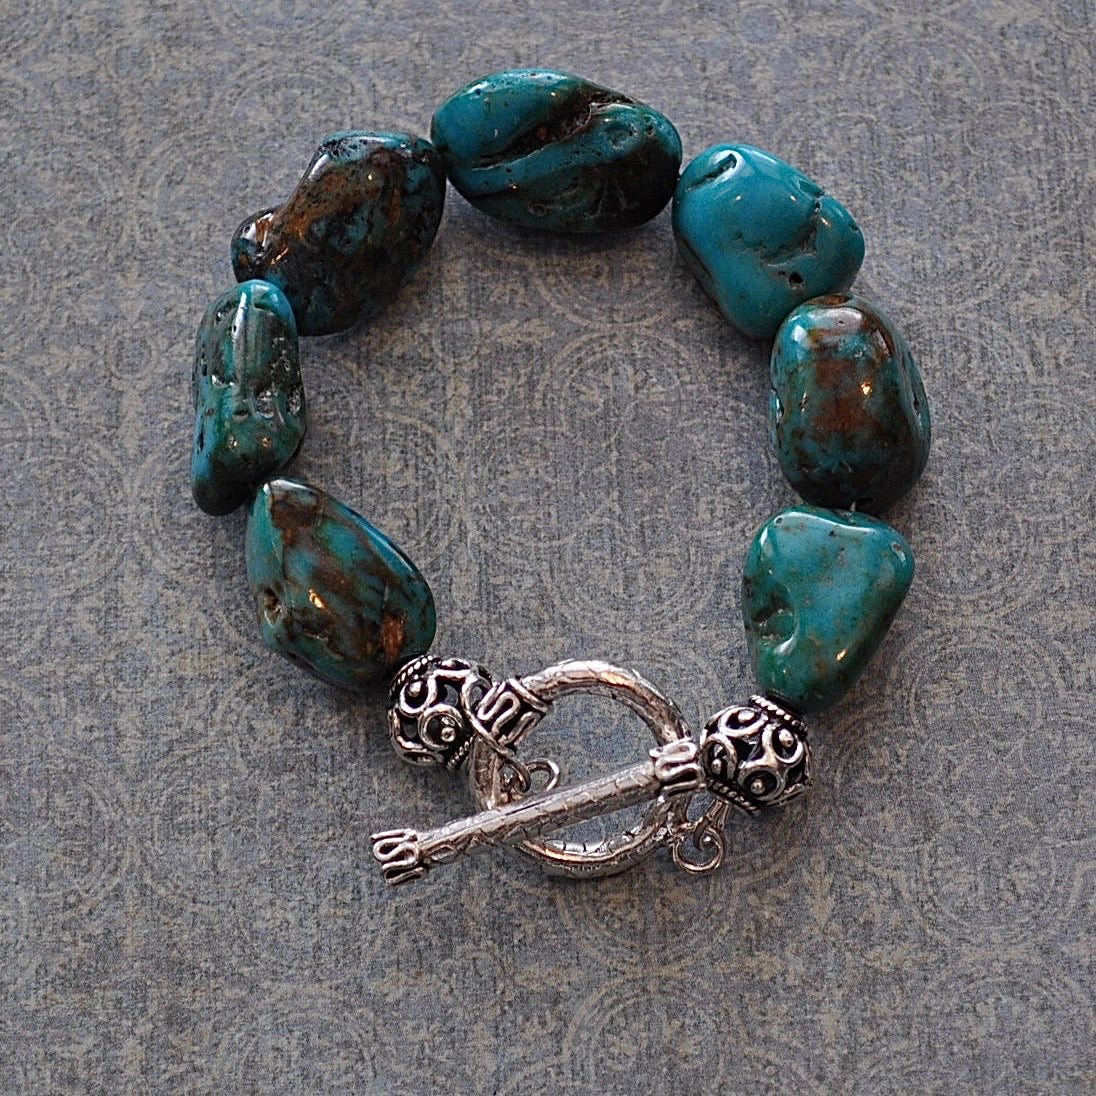 Chunky Turquoise and Sterling Silver Bracelet